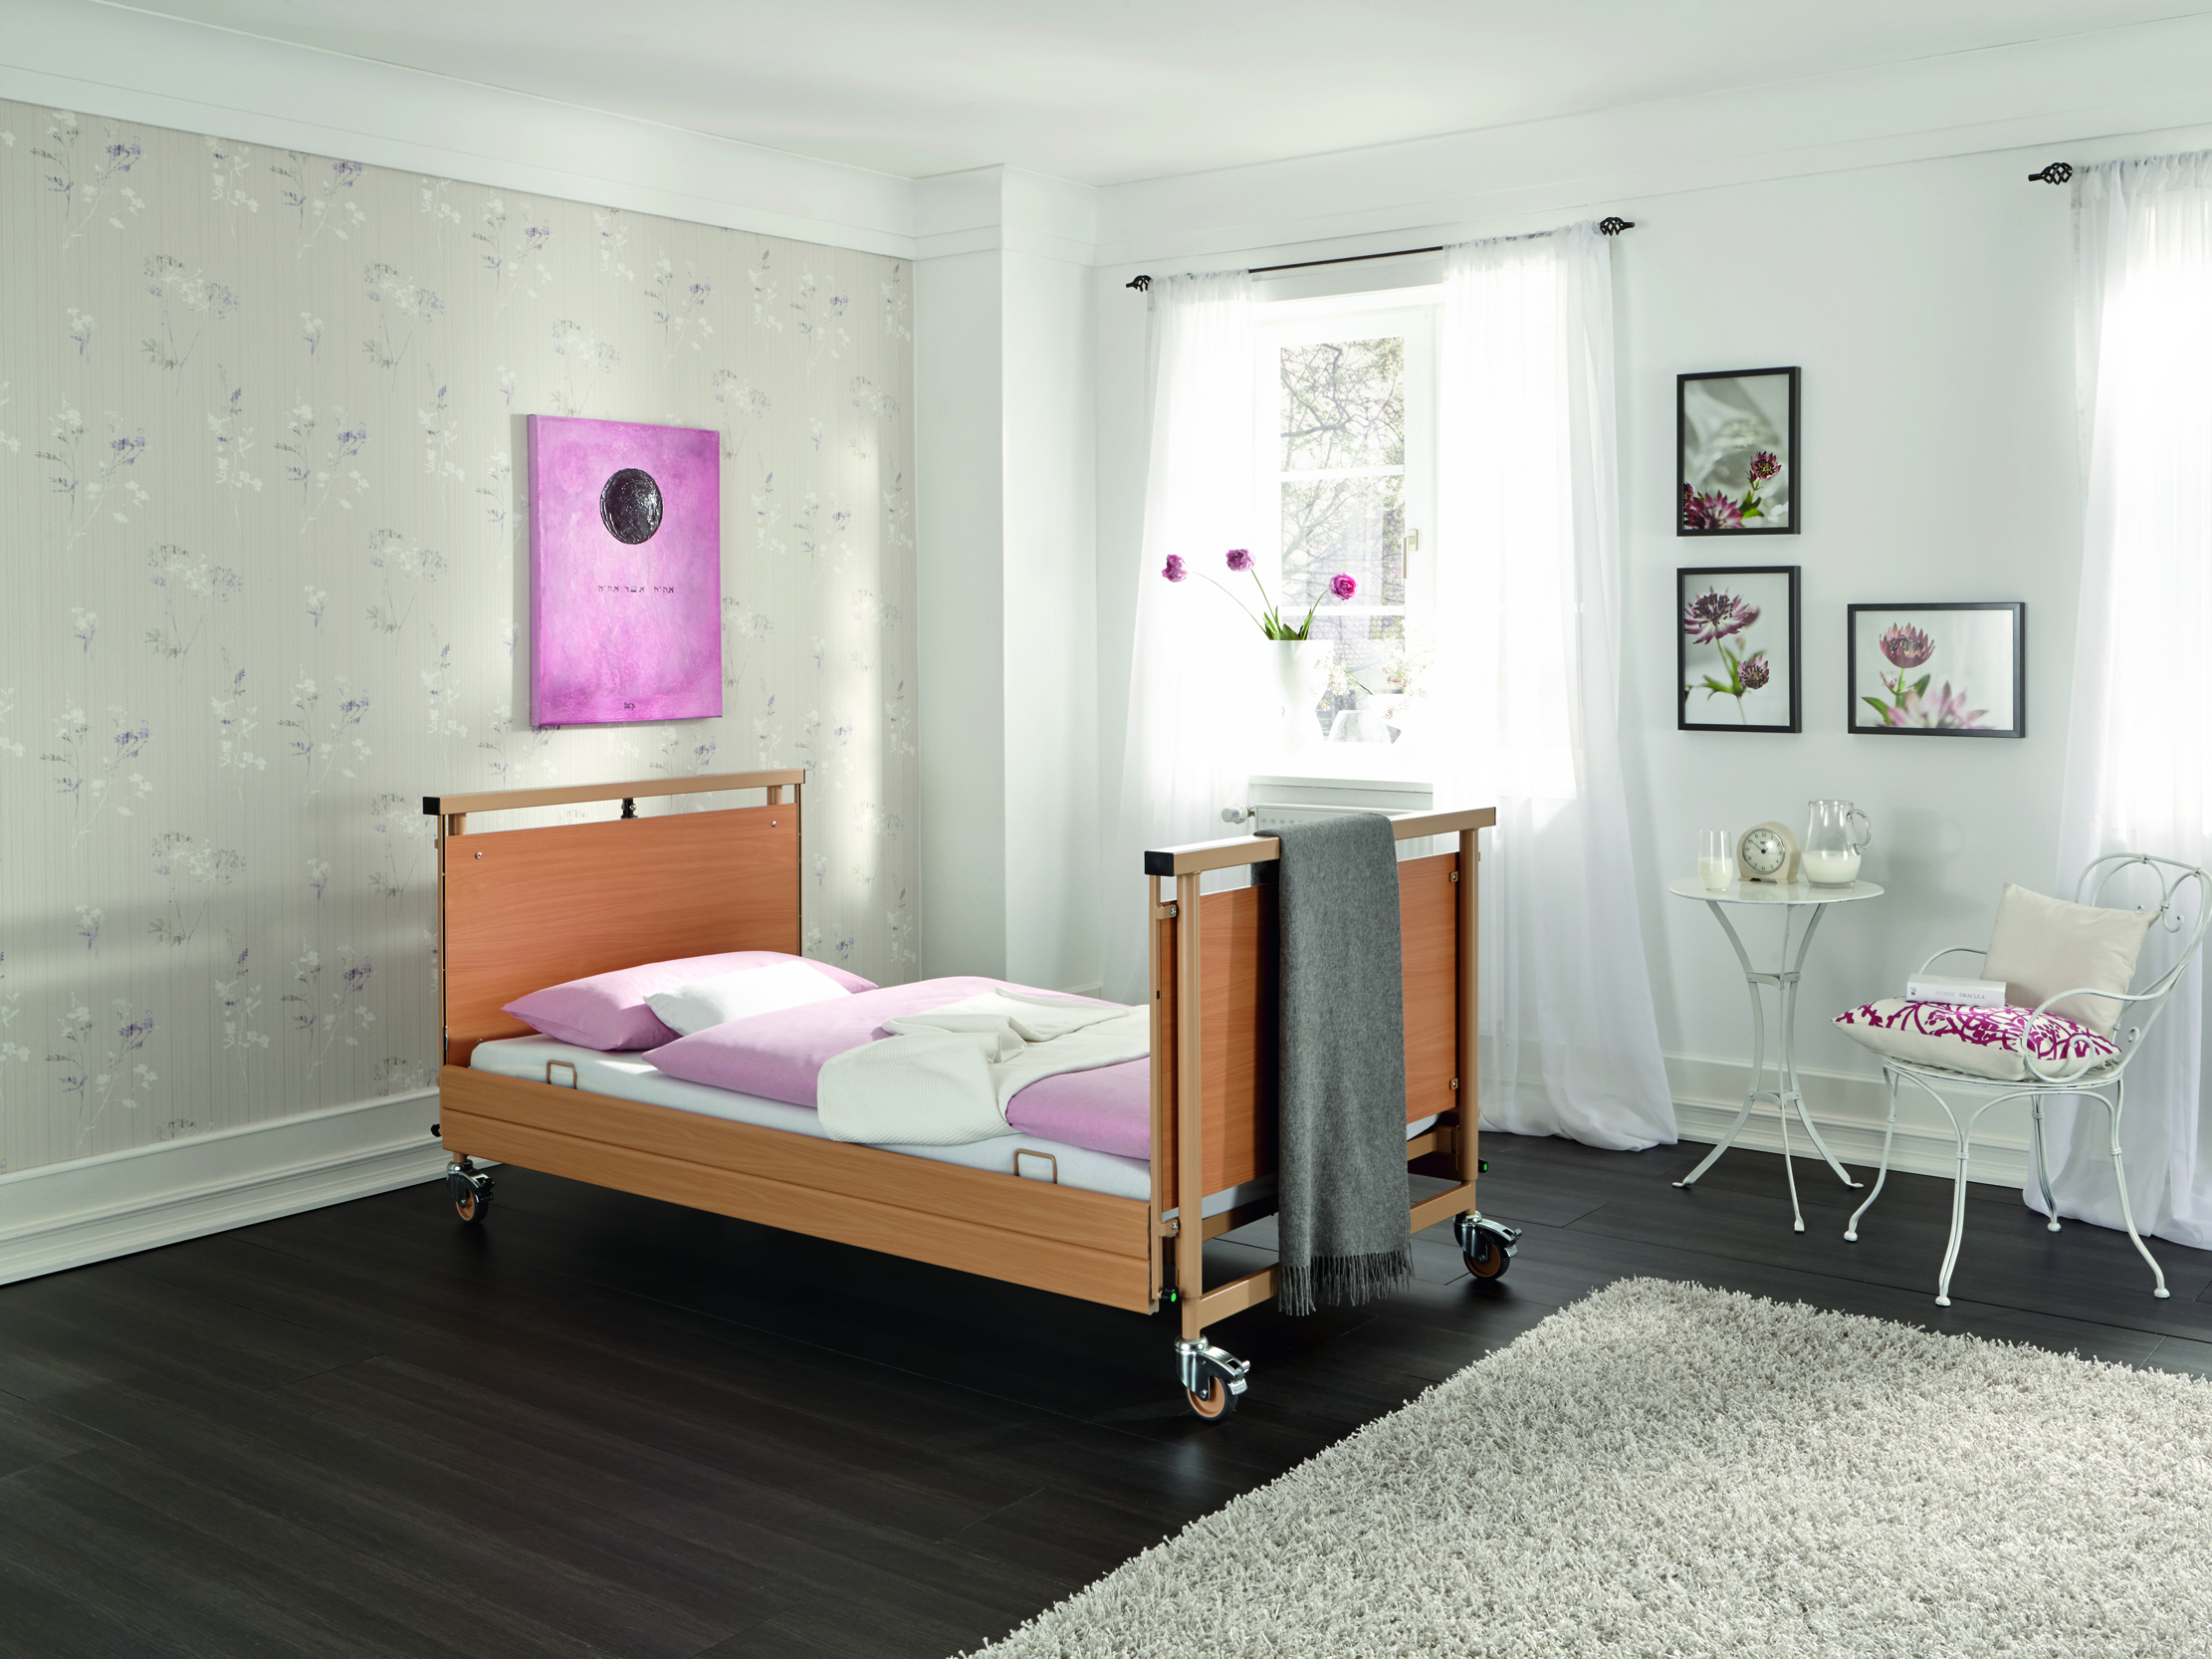 Full-length safety side (DSG) on the Allura II heavy-duty bed